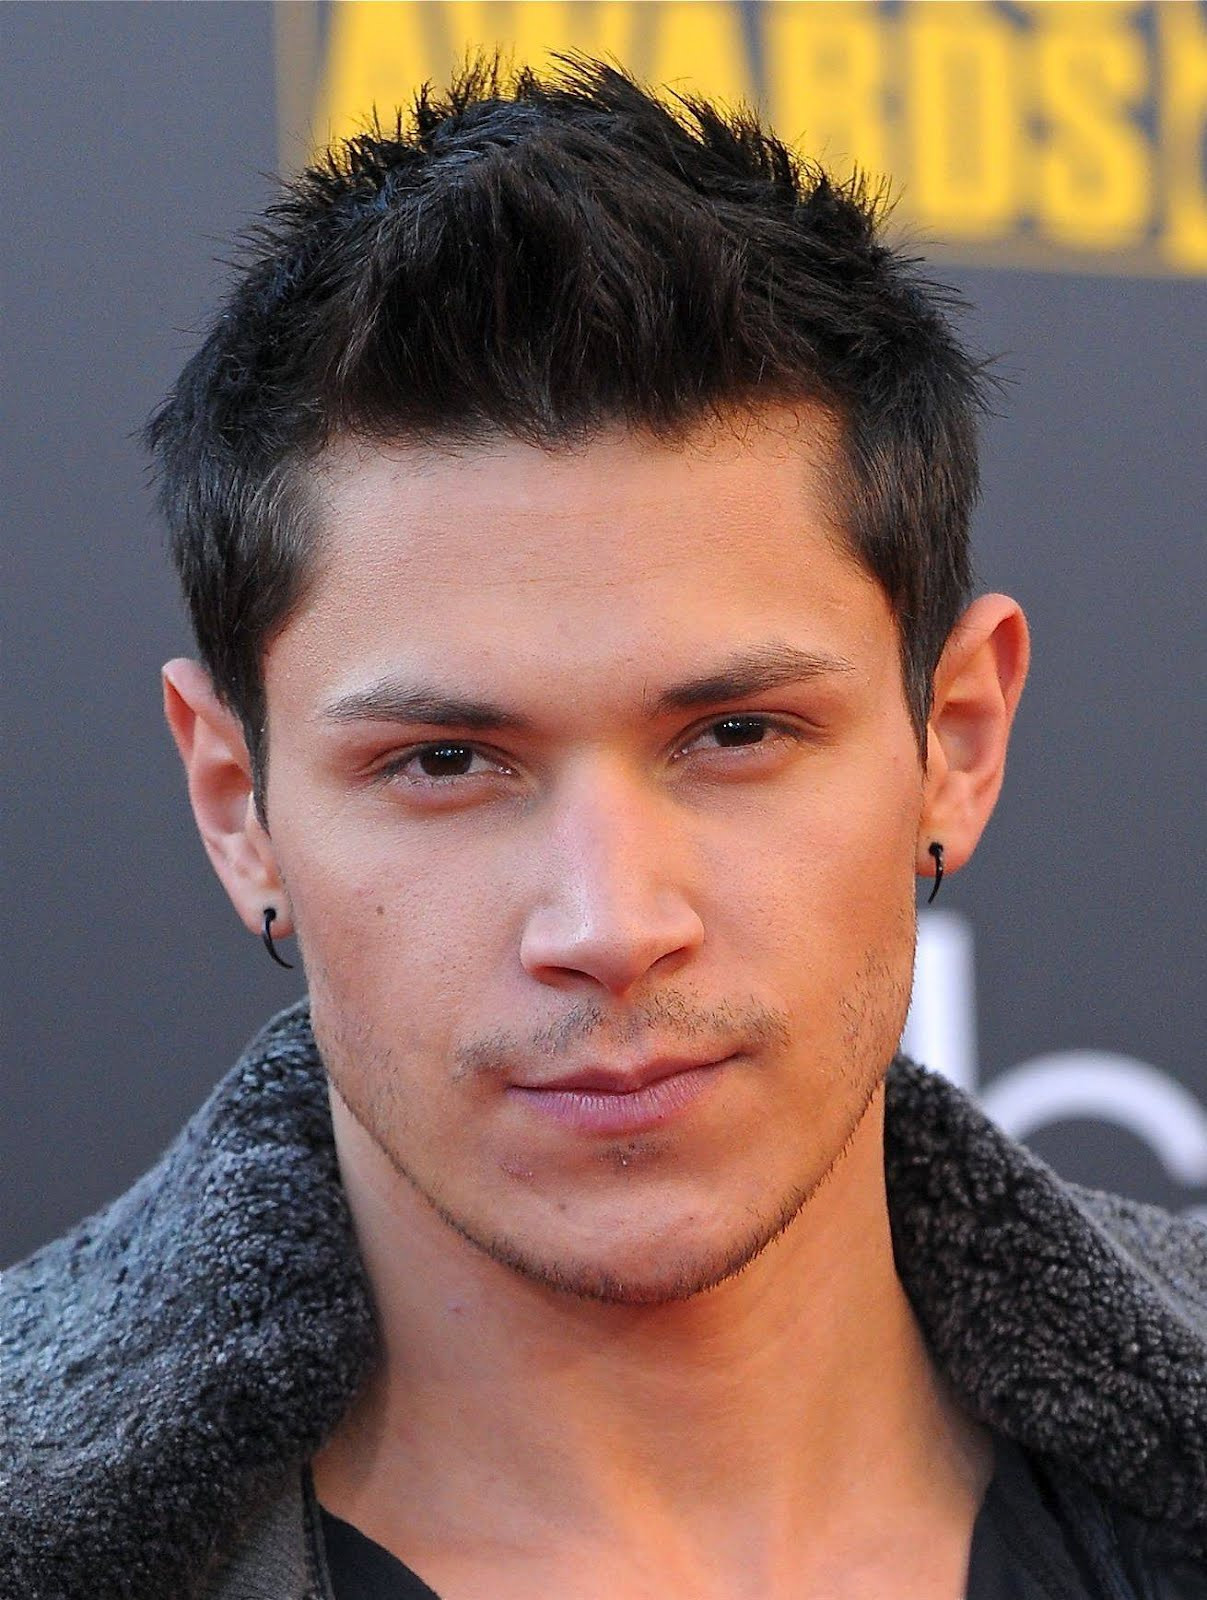 Best ideas about Trendy Hairstyles For Boys . Save or Pin 25 Best Short Spiky Haircuts For Guys Now.